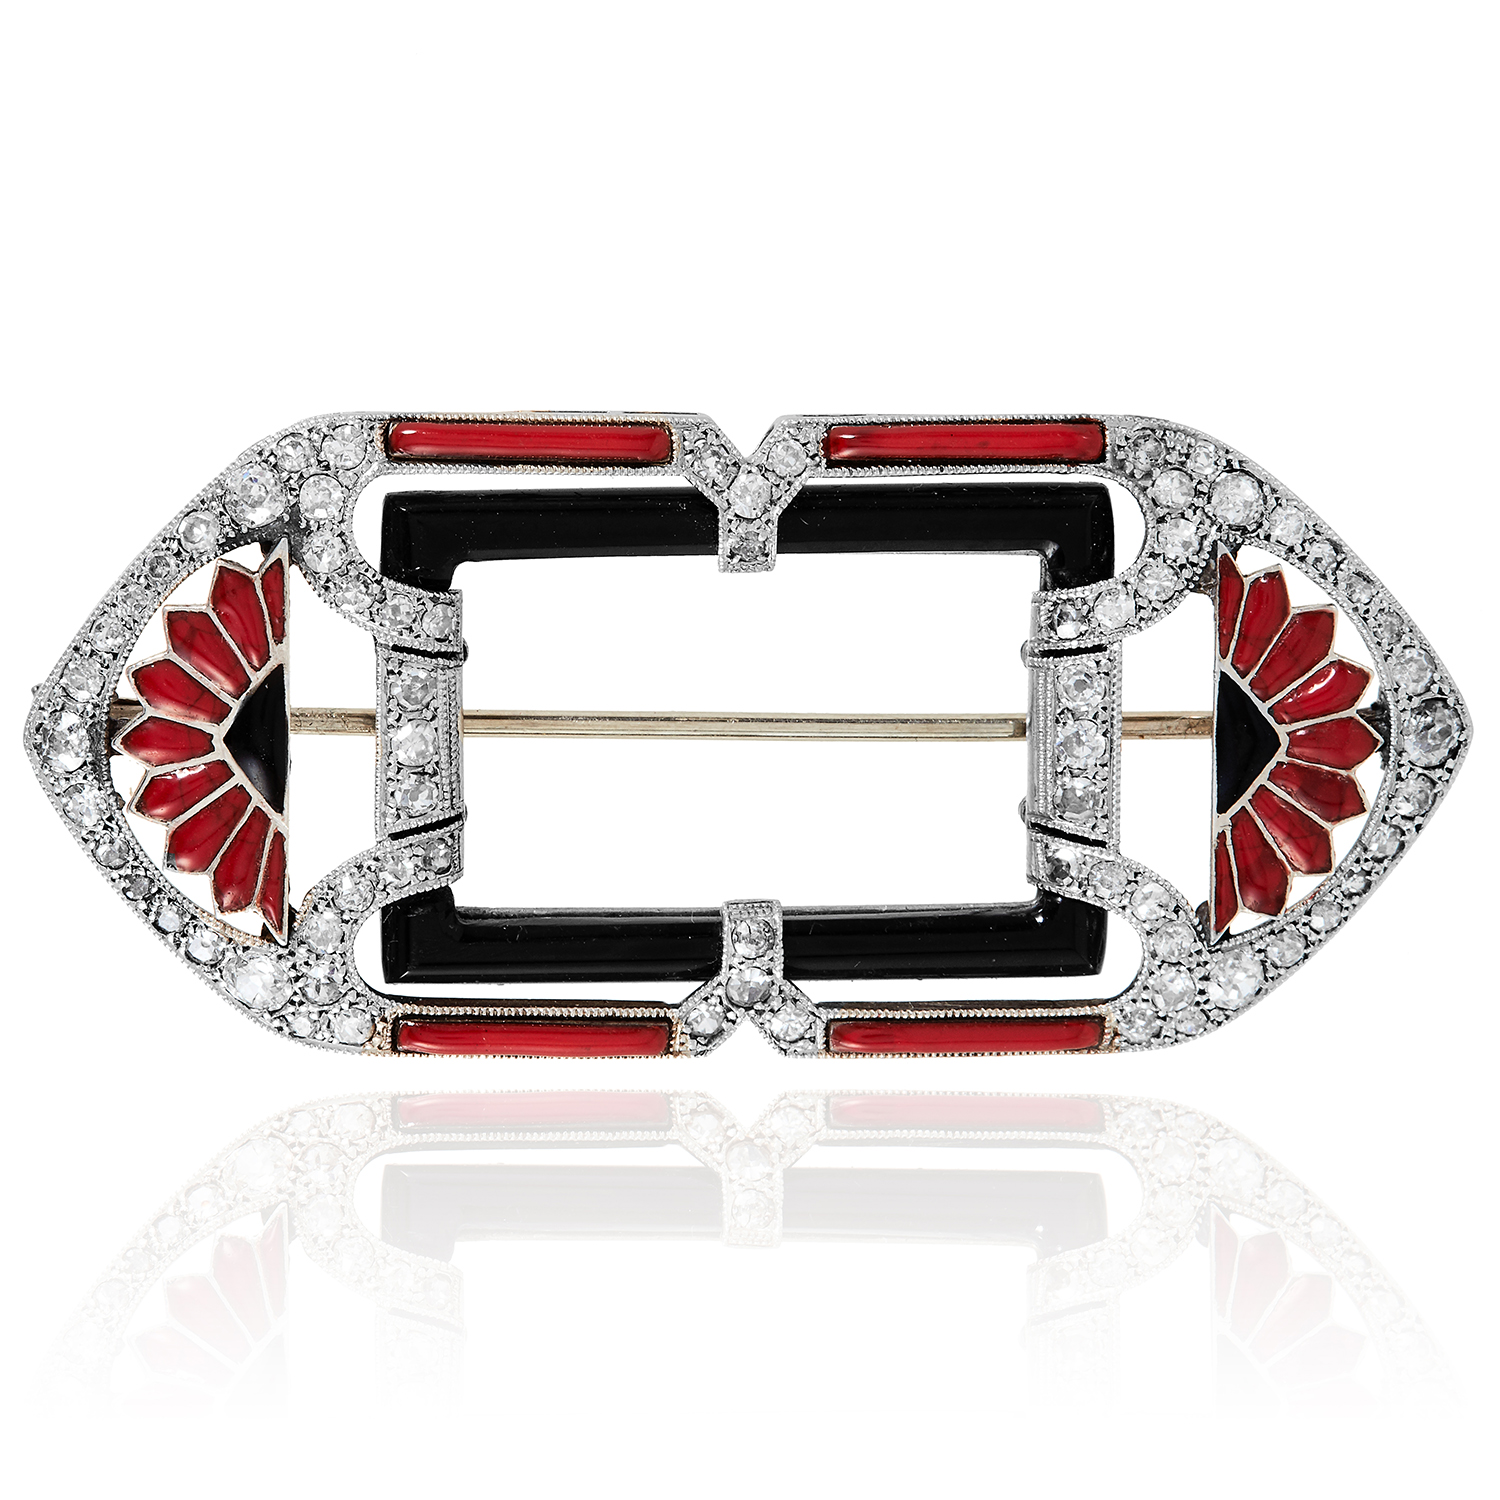 Los 22 - AN ART DECO DIAMOND, ONYX AND ENAMEL BROOCH in white gold or platinum, in Art Deco design,